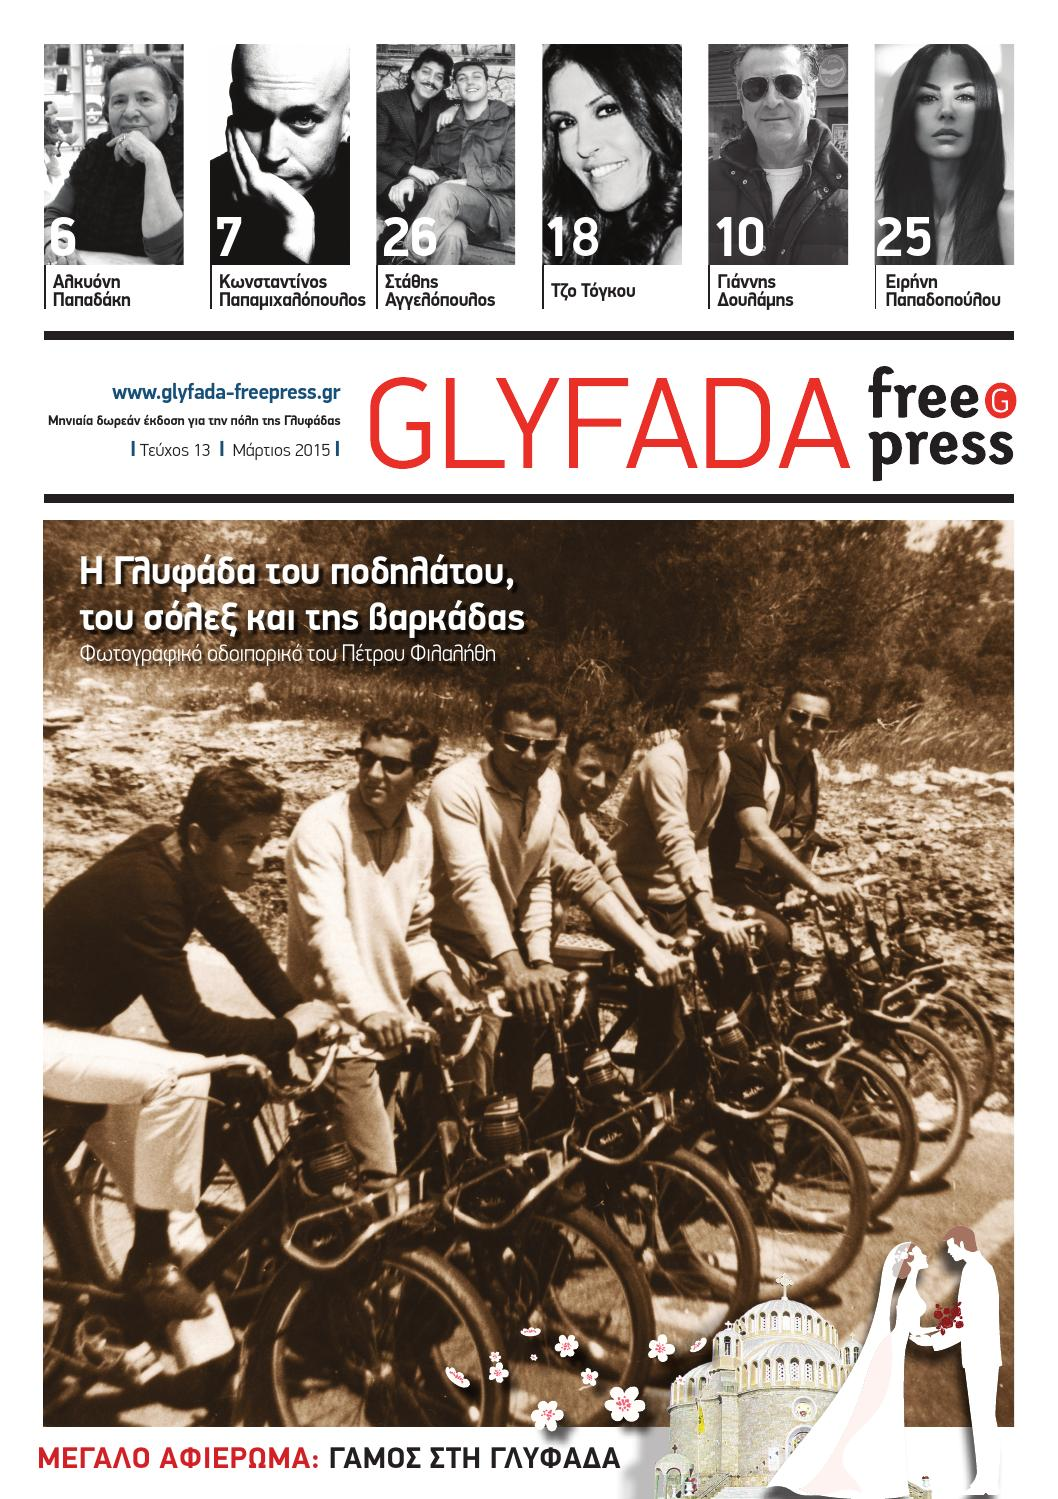 785c0bea4ec Glyfada Free Press #13 by Glyfada Free Press - issuu